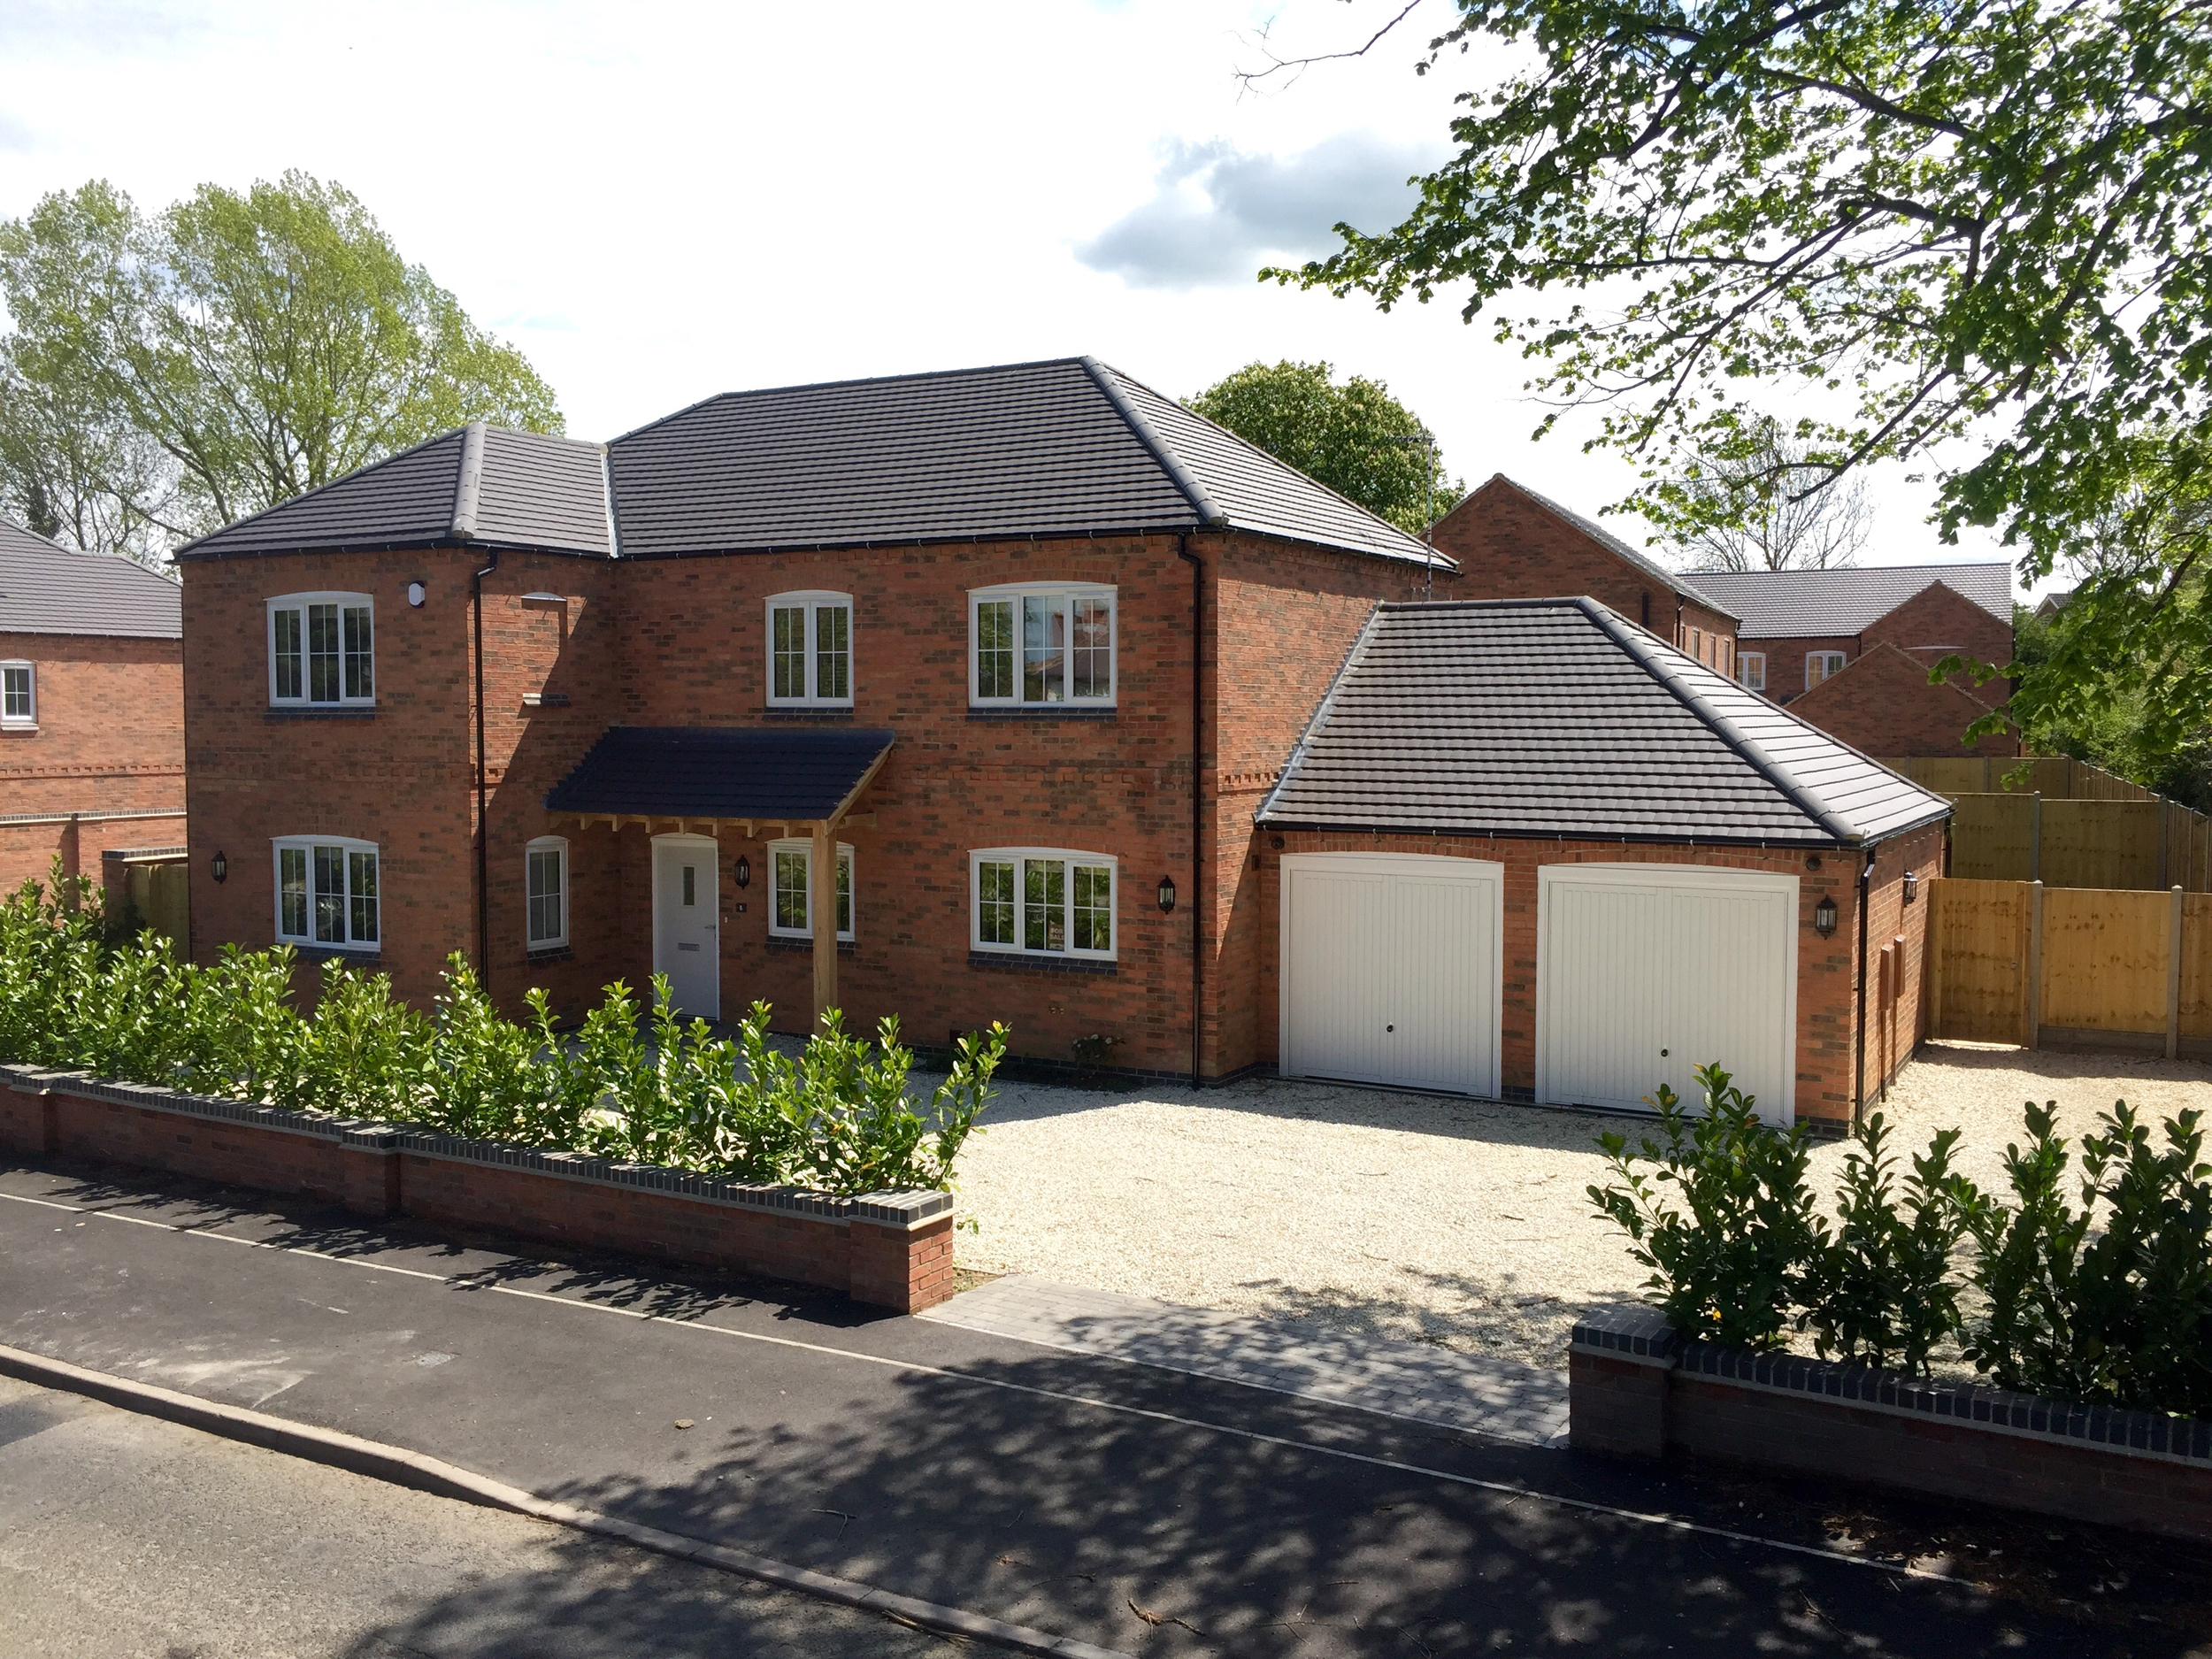 Plot 5 The Yews 4 Bedrooms £SOLD